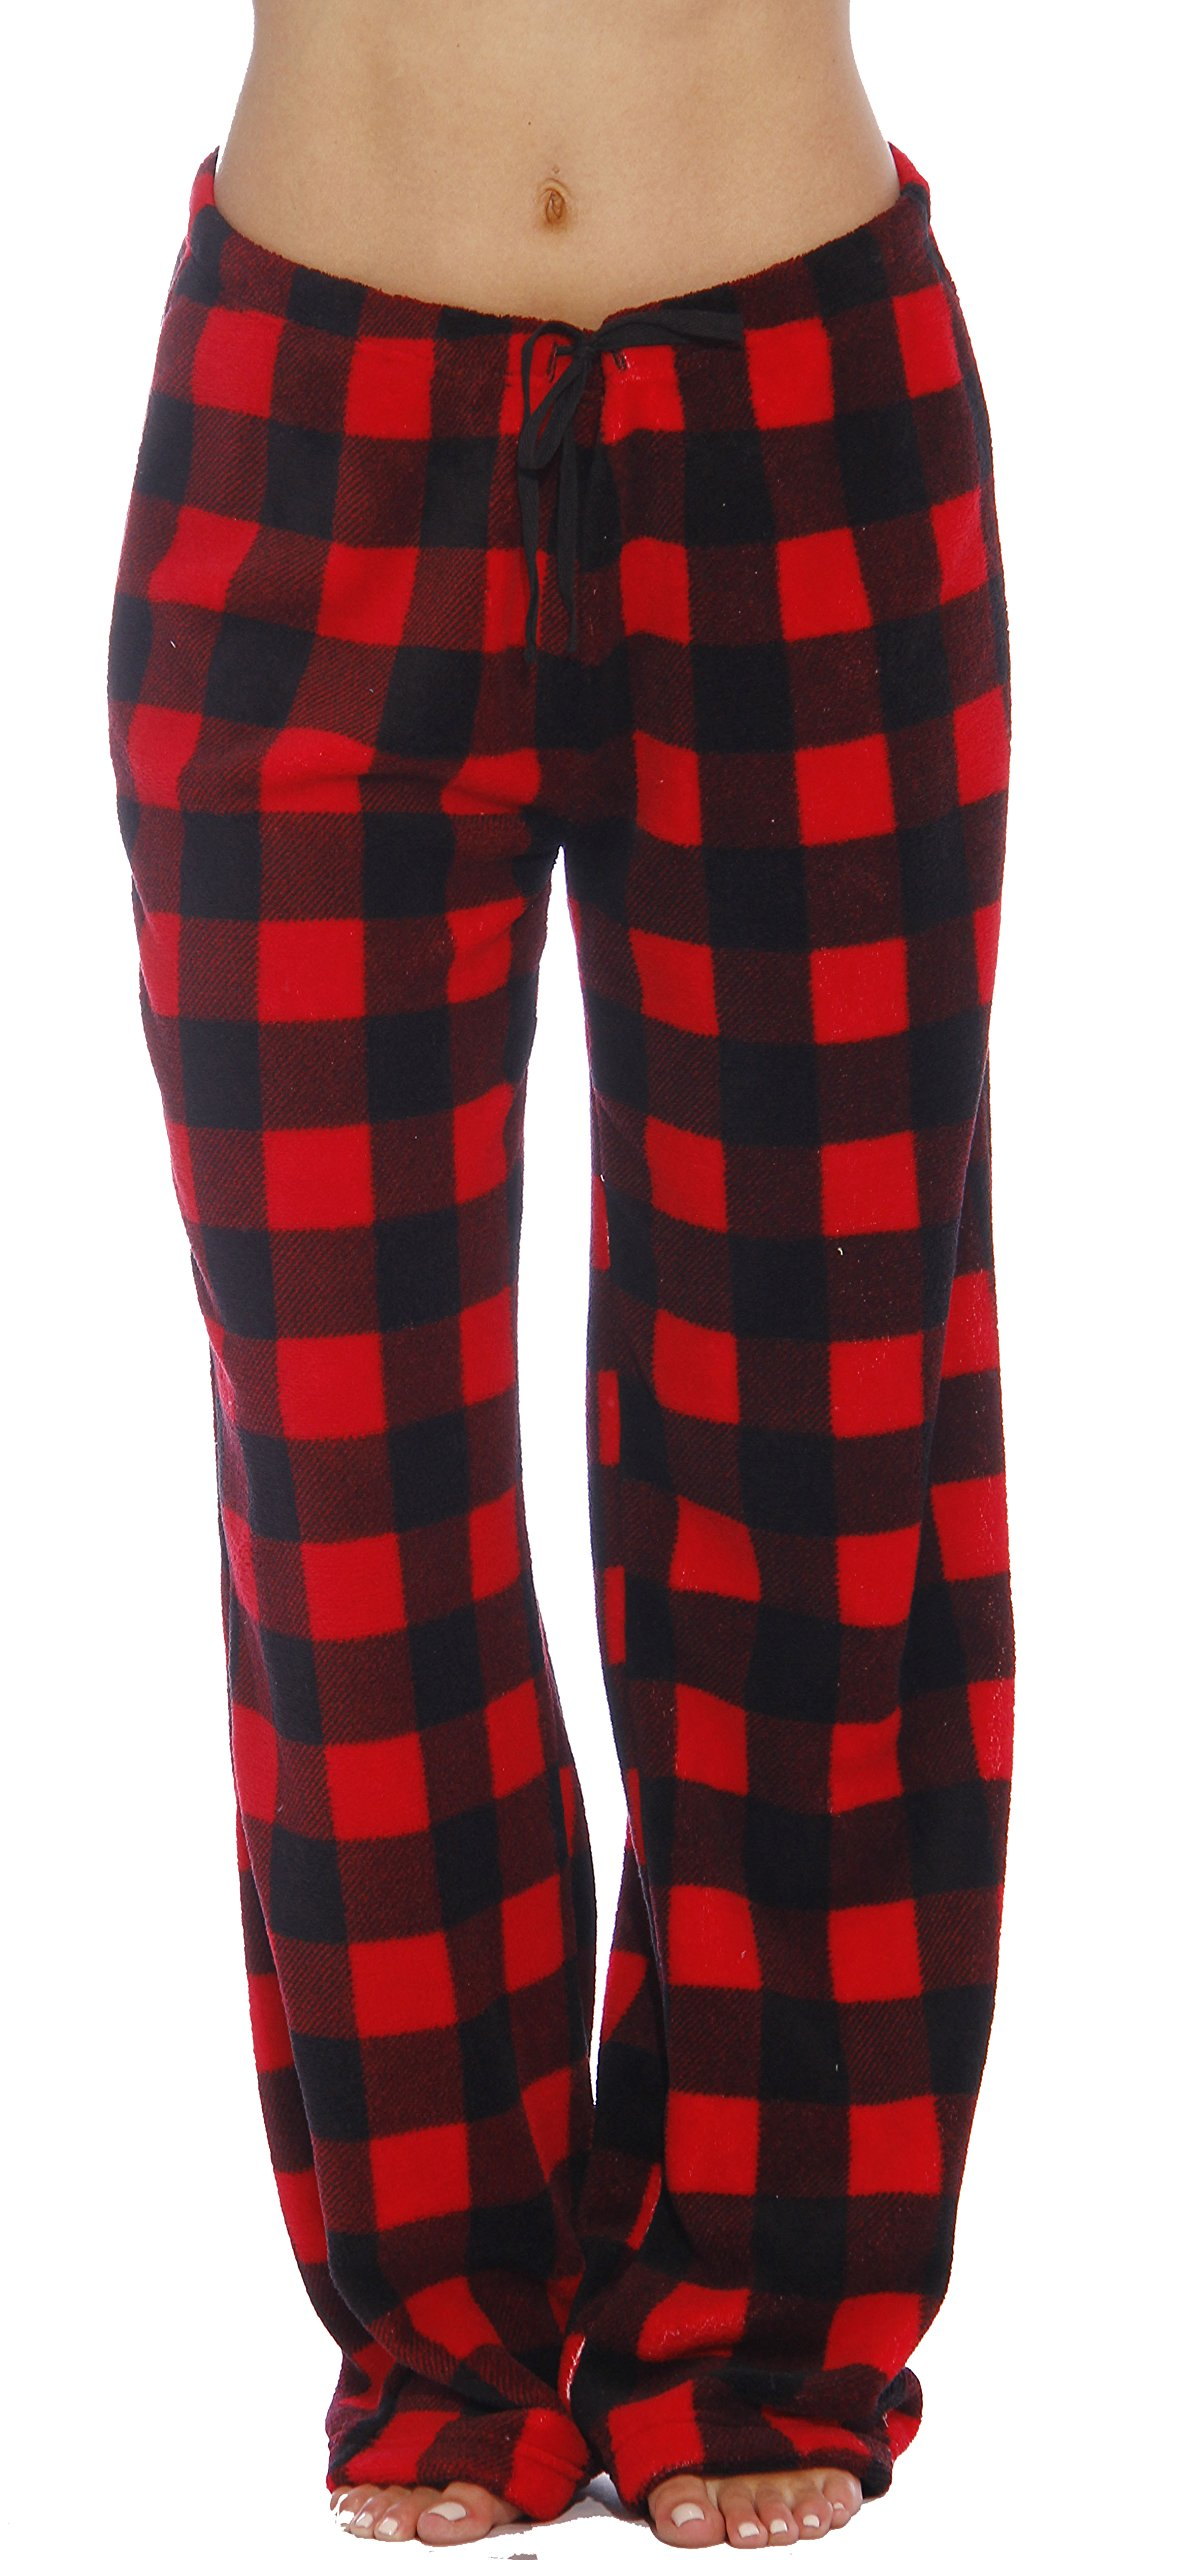 Just Love Women's Plush Pajama Pants, Small, Buffalo Plaid Red by Just Love (Image #1)